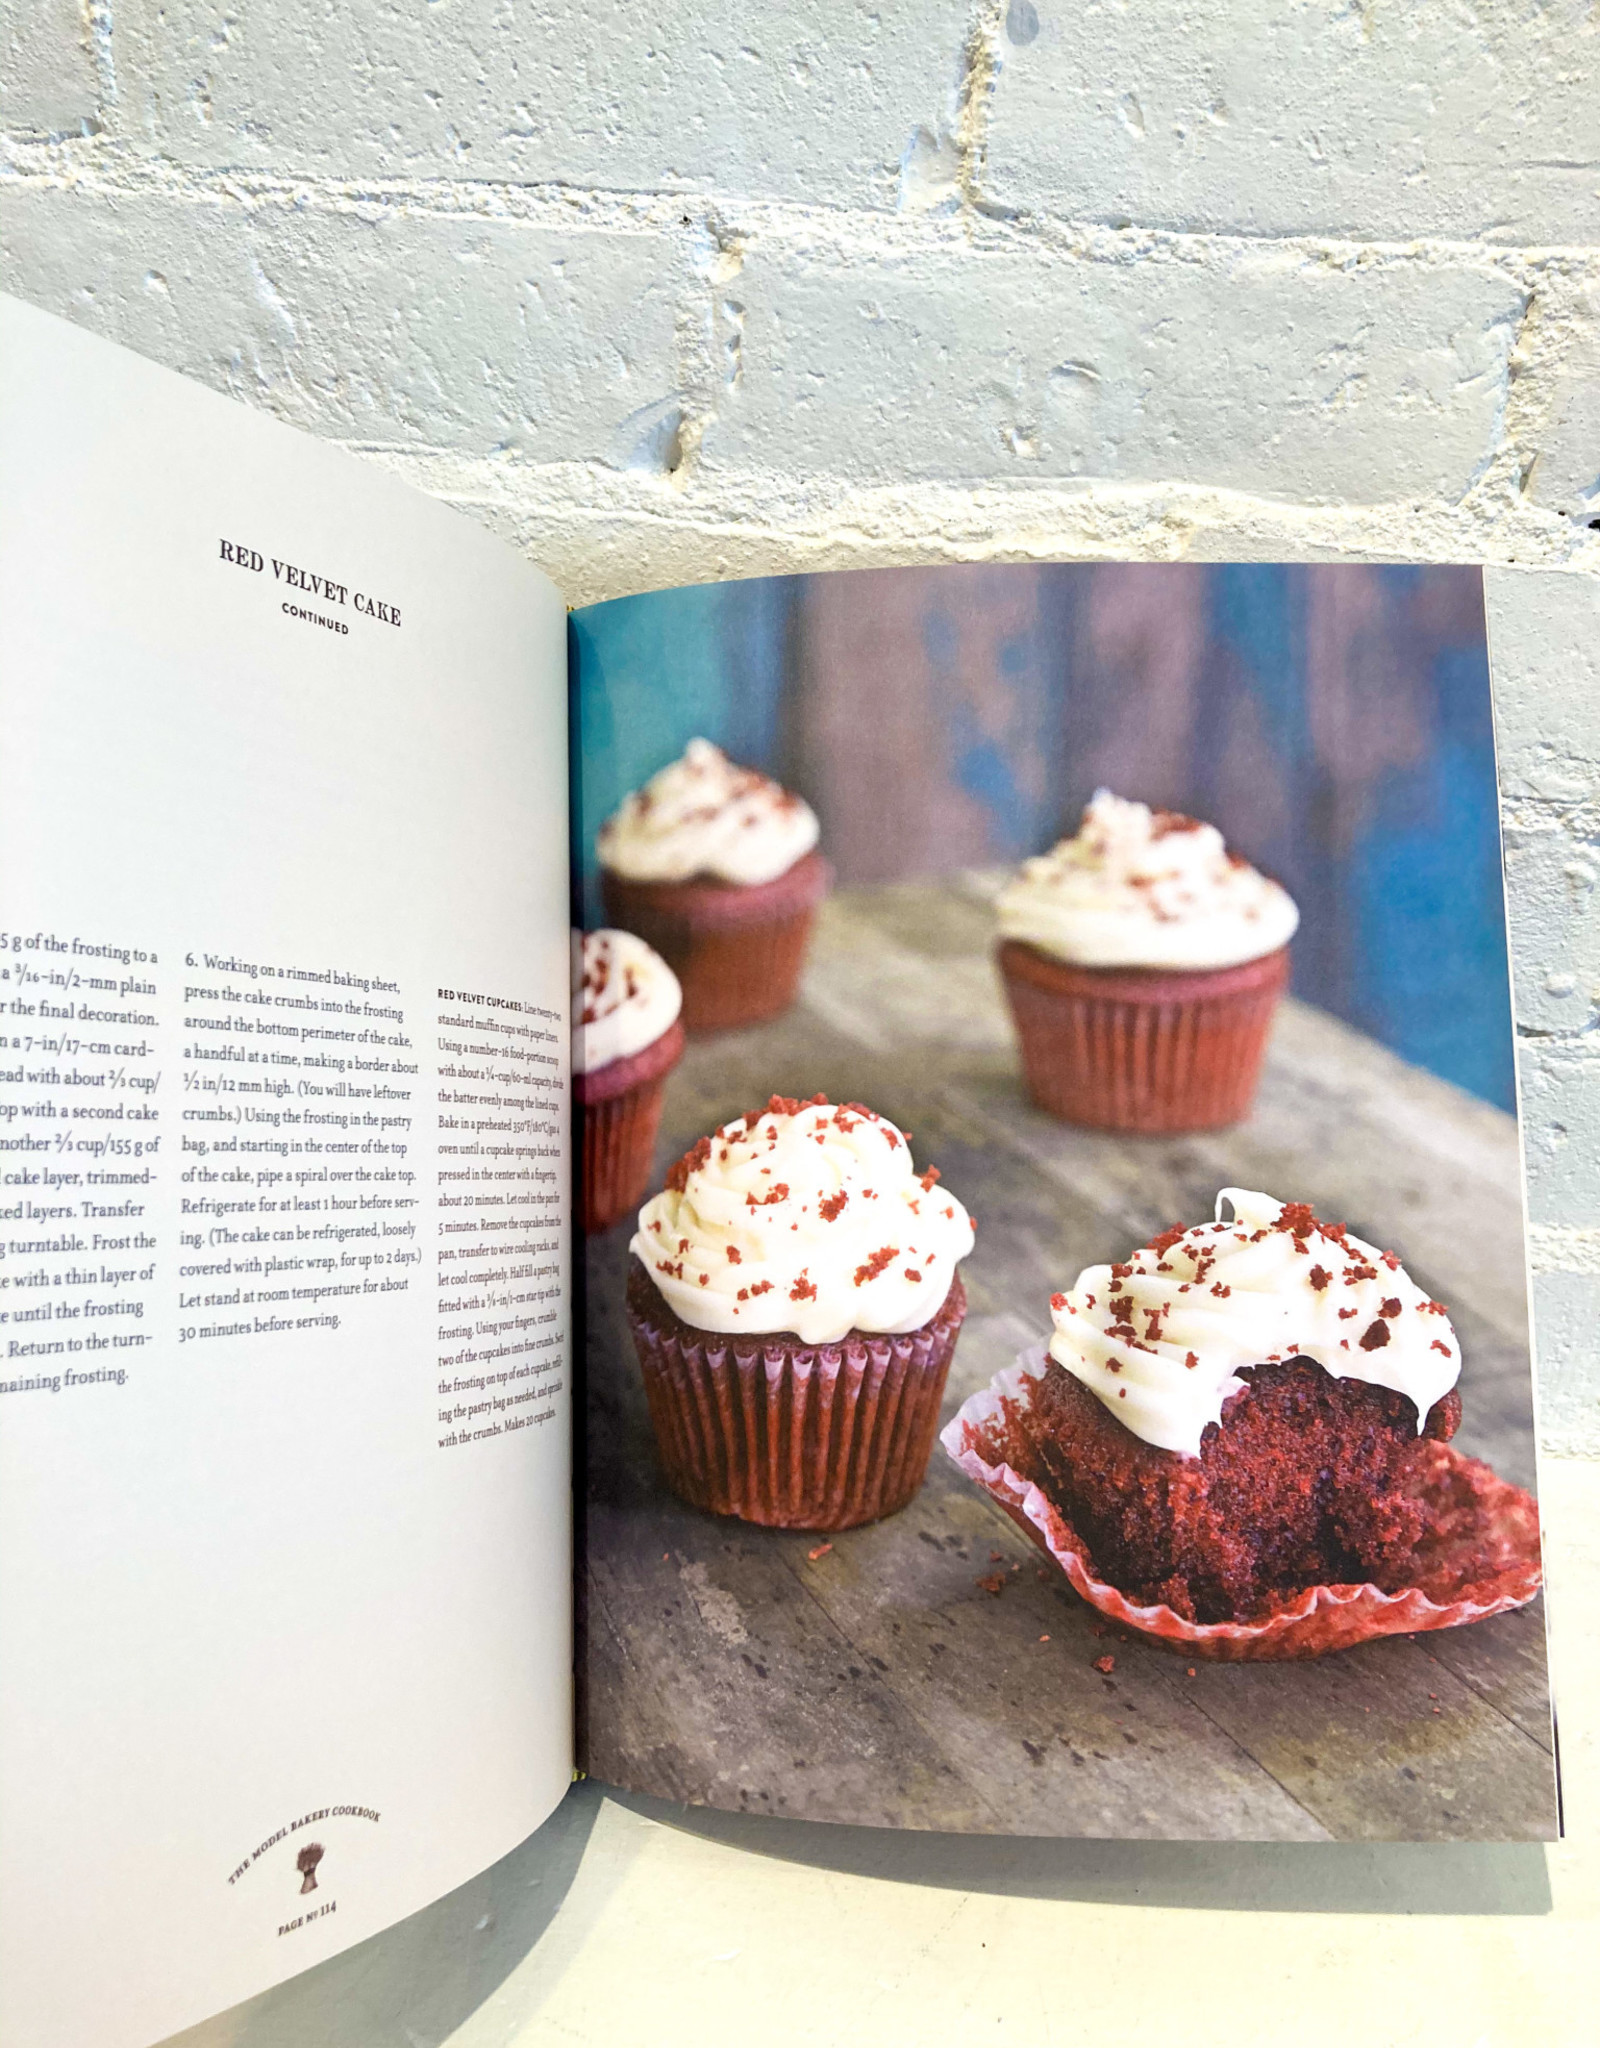 The Model Bakery Cookbook by Karen Mitchell and Sarah Mitchell Hansen with Rick Rodgers